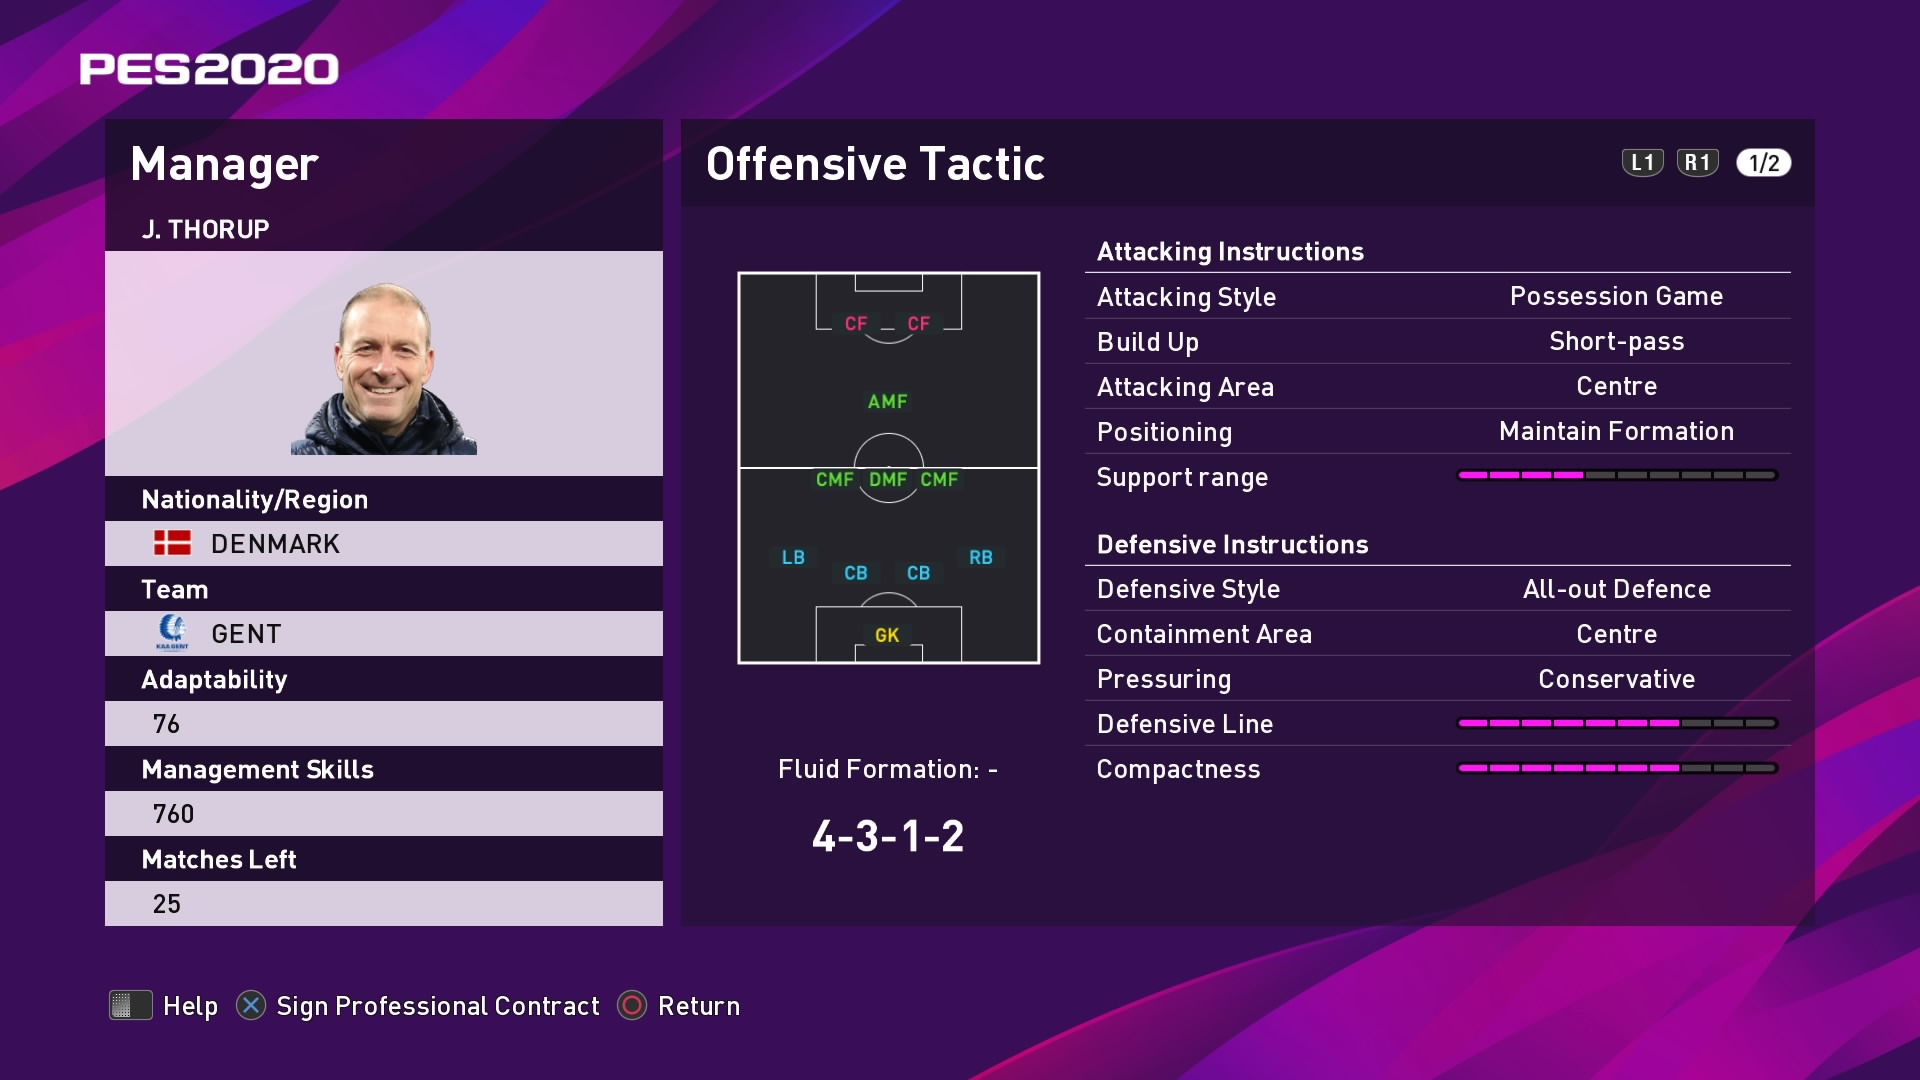 J. Thorup (Jess Thorup) Offensive Tactic in PES 2020 myClub